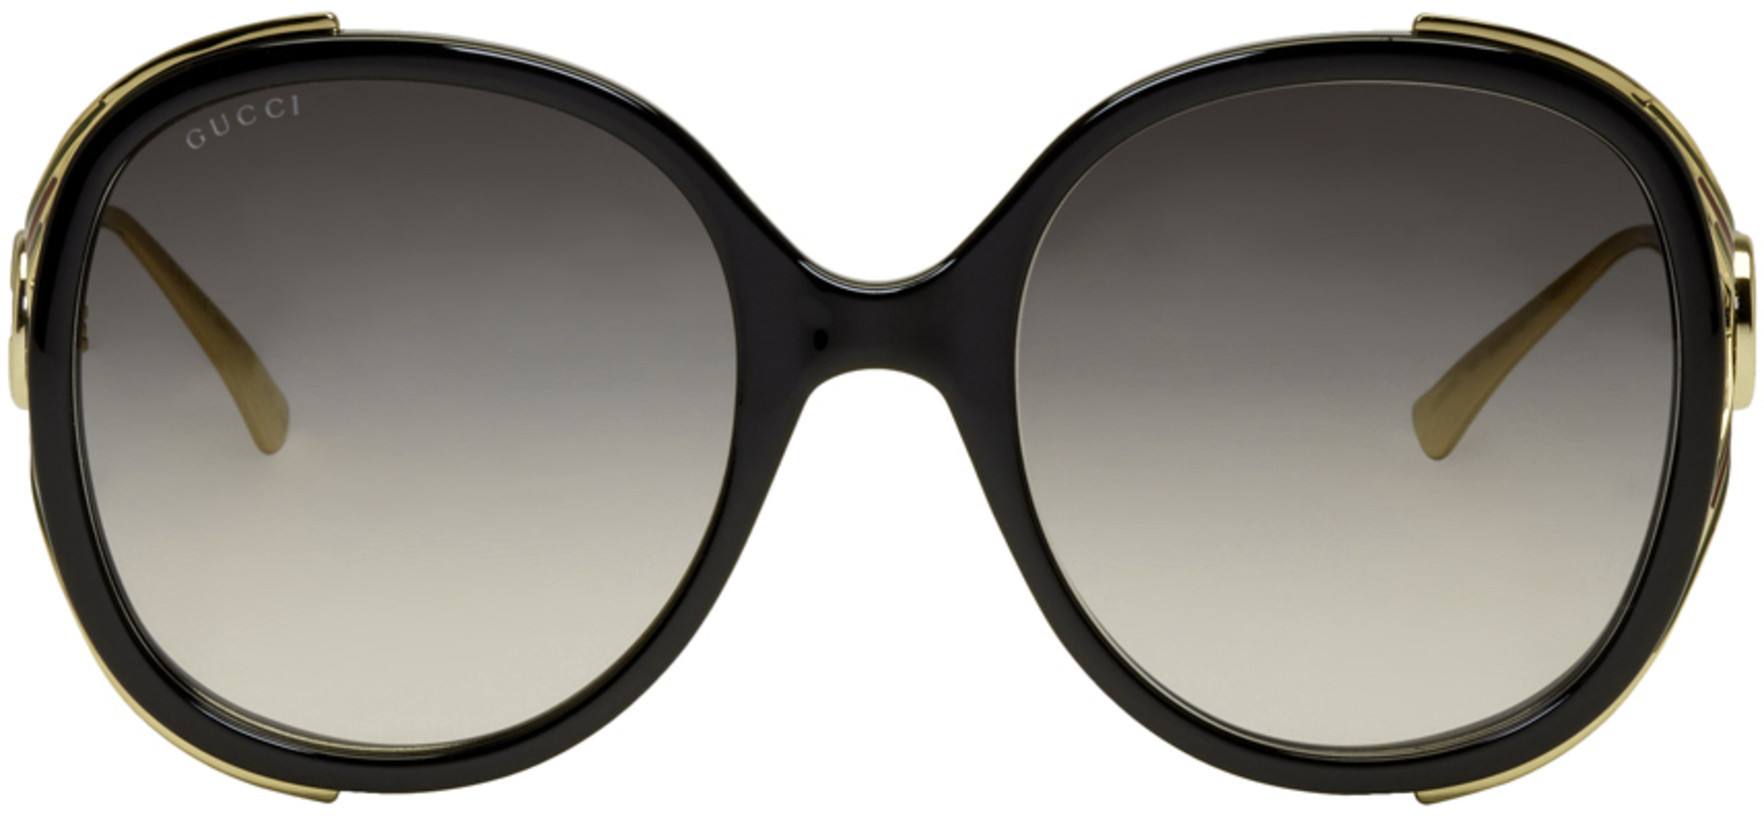 Gucci Black & Gold Injected Sunglasses